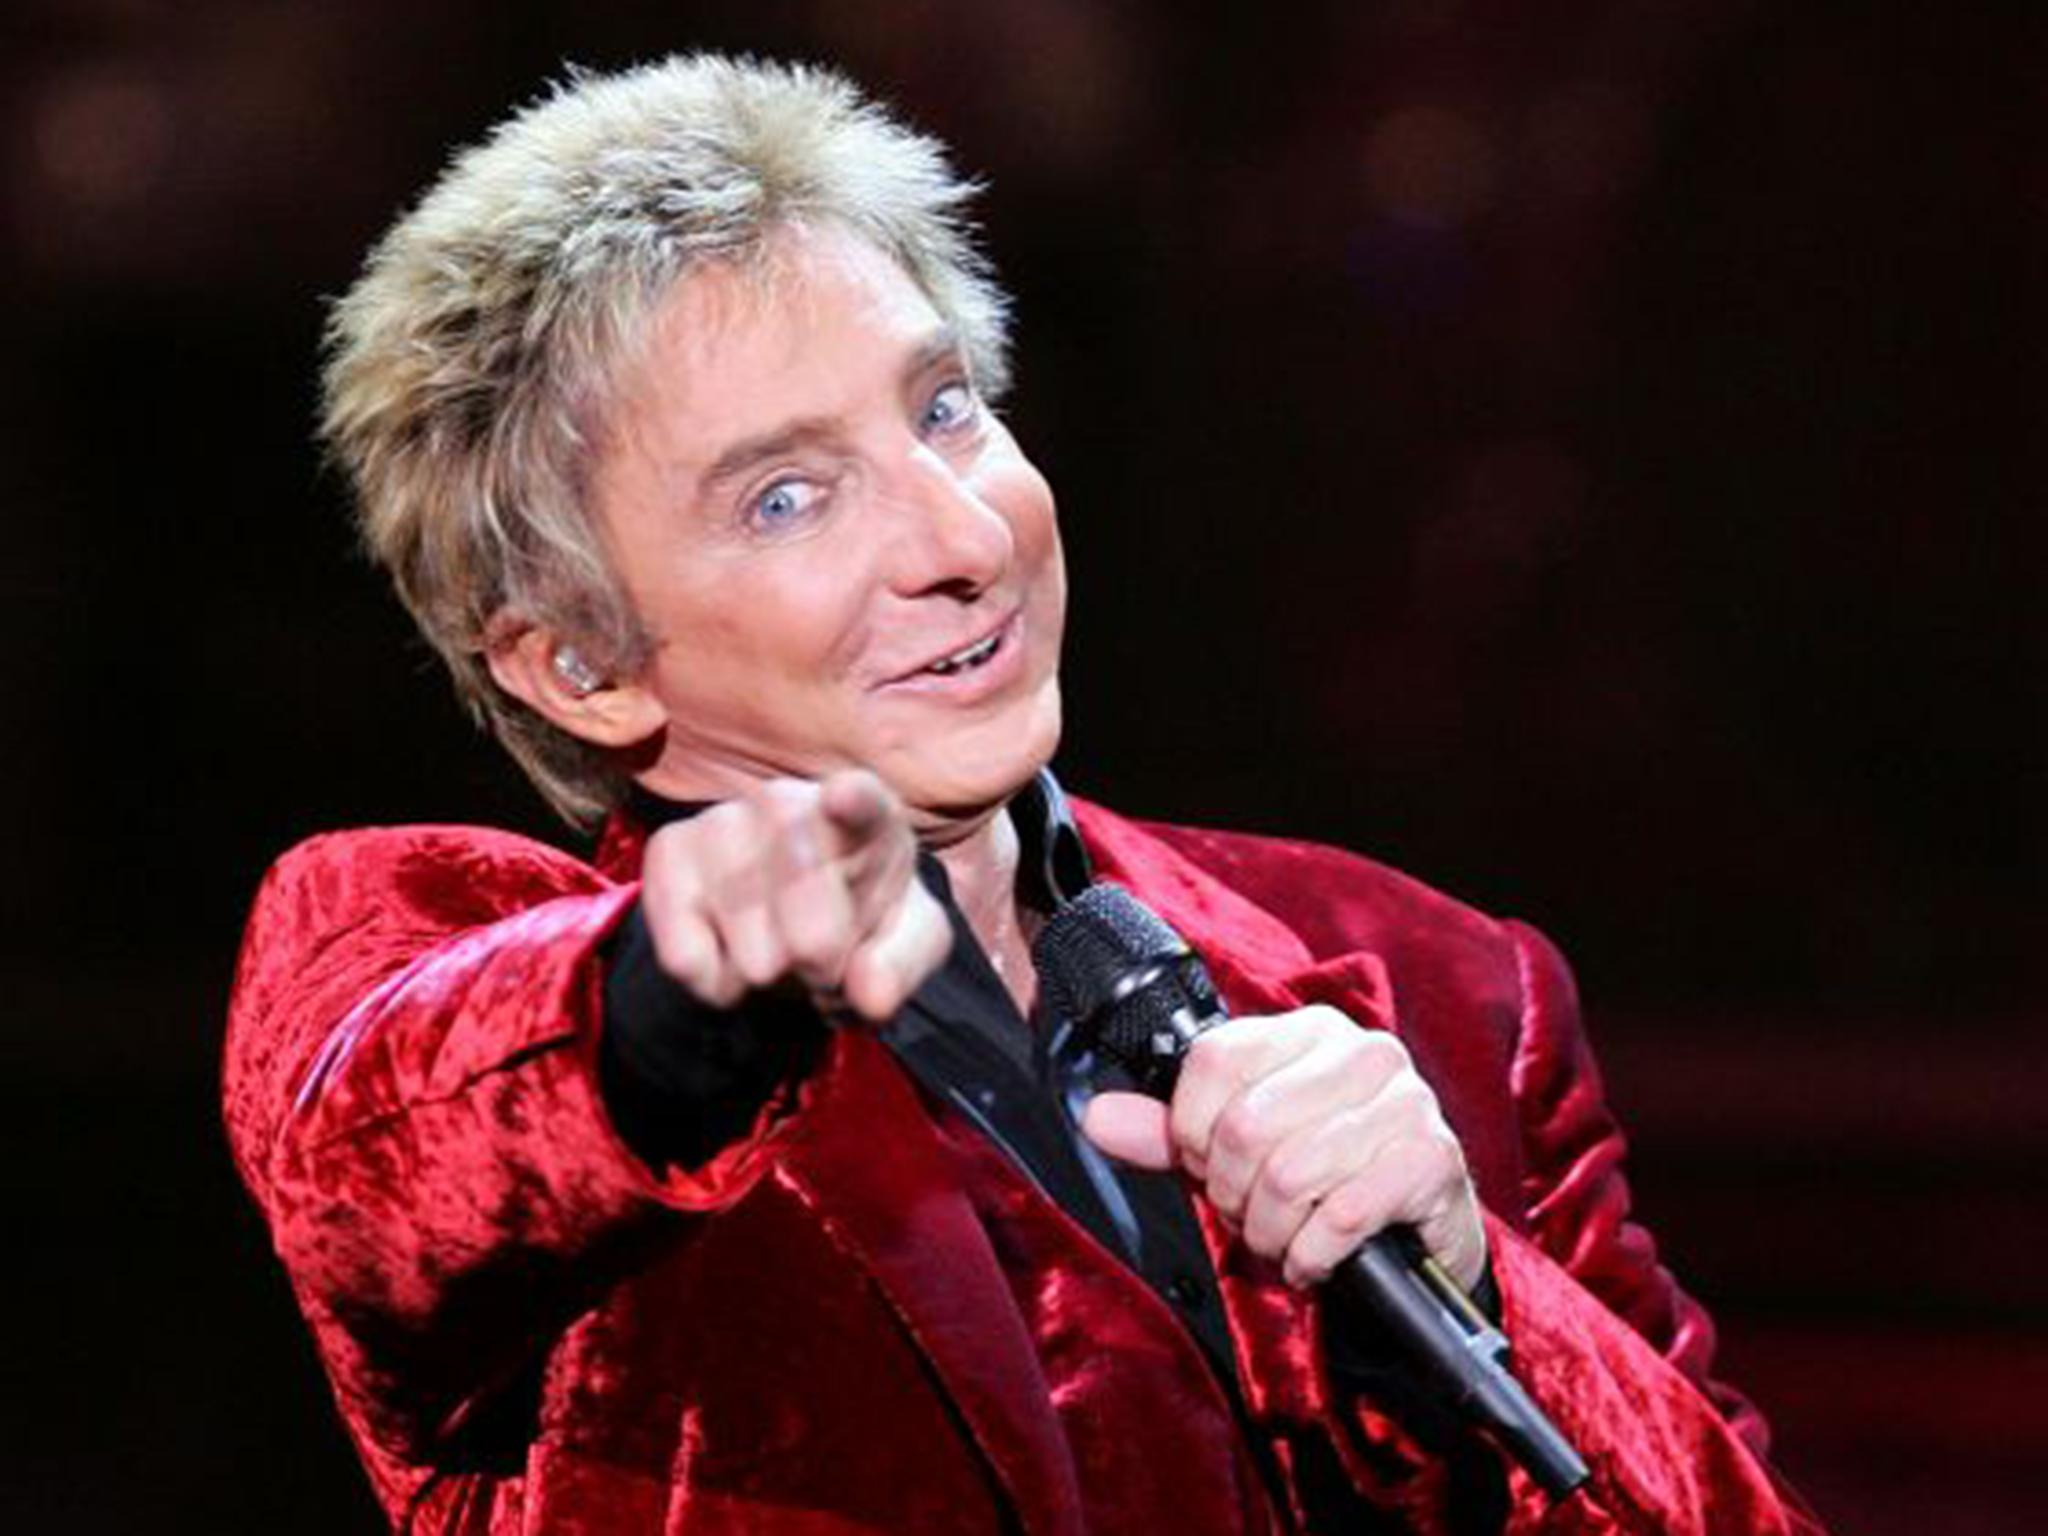 barry manilow out of surgery and doing well but ordered not to talk